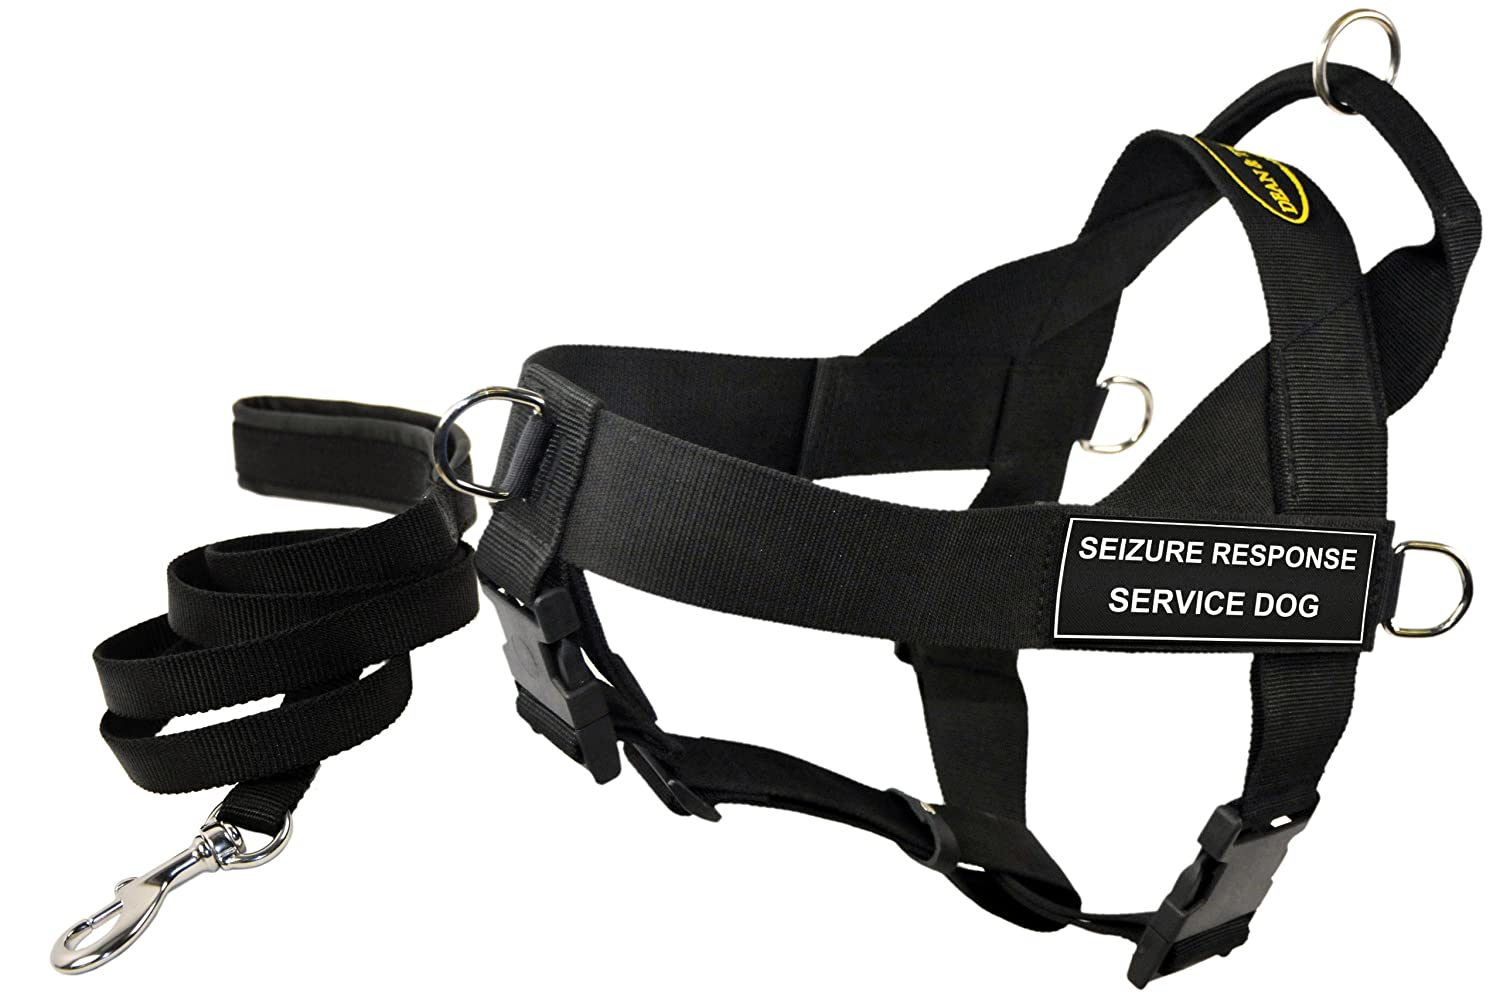 Dean and Tyler Bundle One DT Universal Harness, Seizure Response Service Dog, X-Small with One Padded Puppy Leash, 6-Feet Stainless Snap, Black